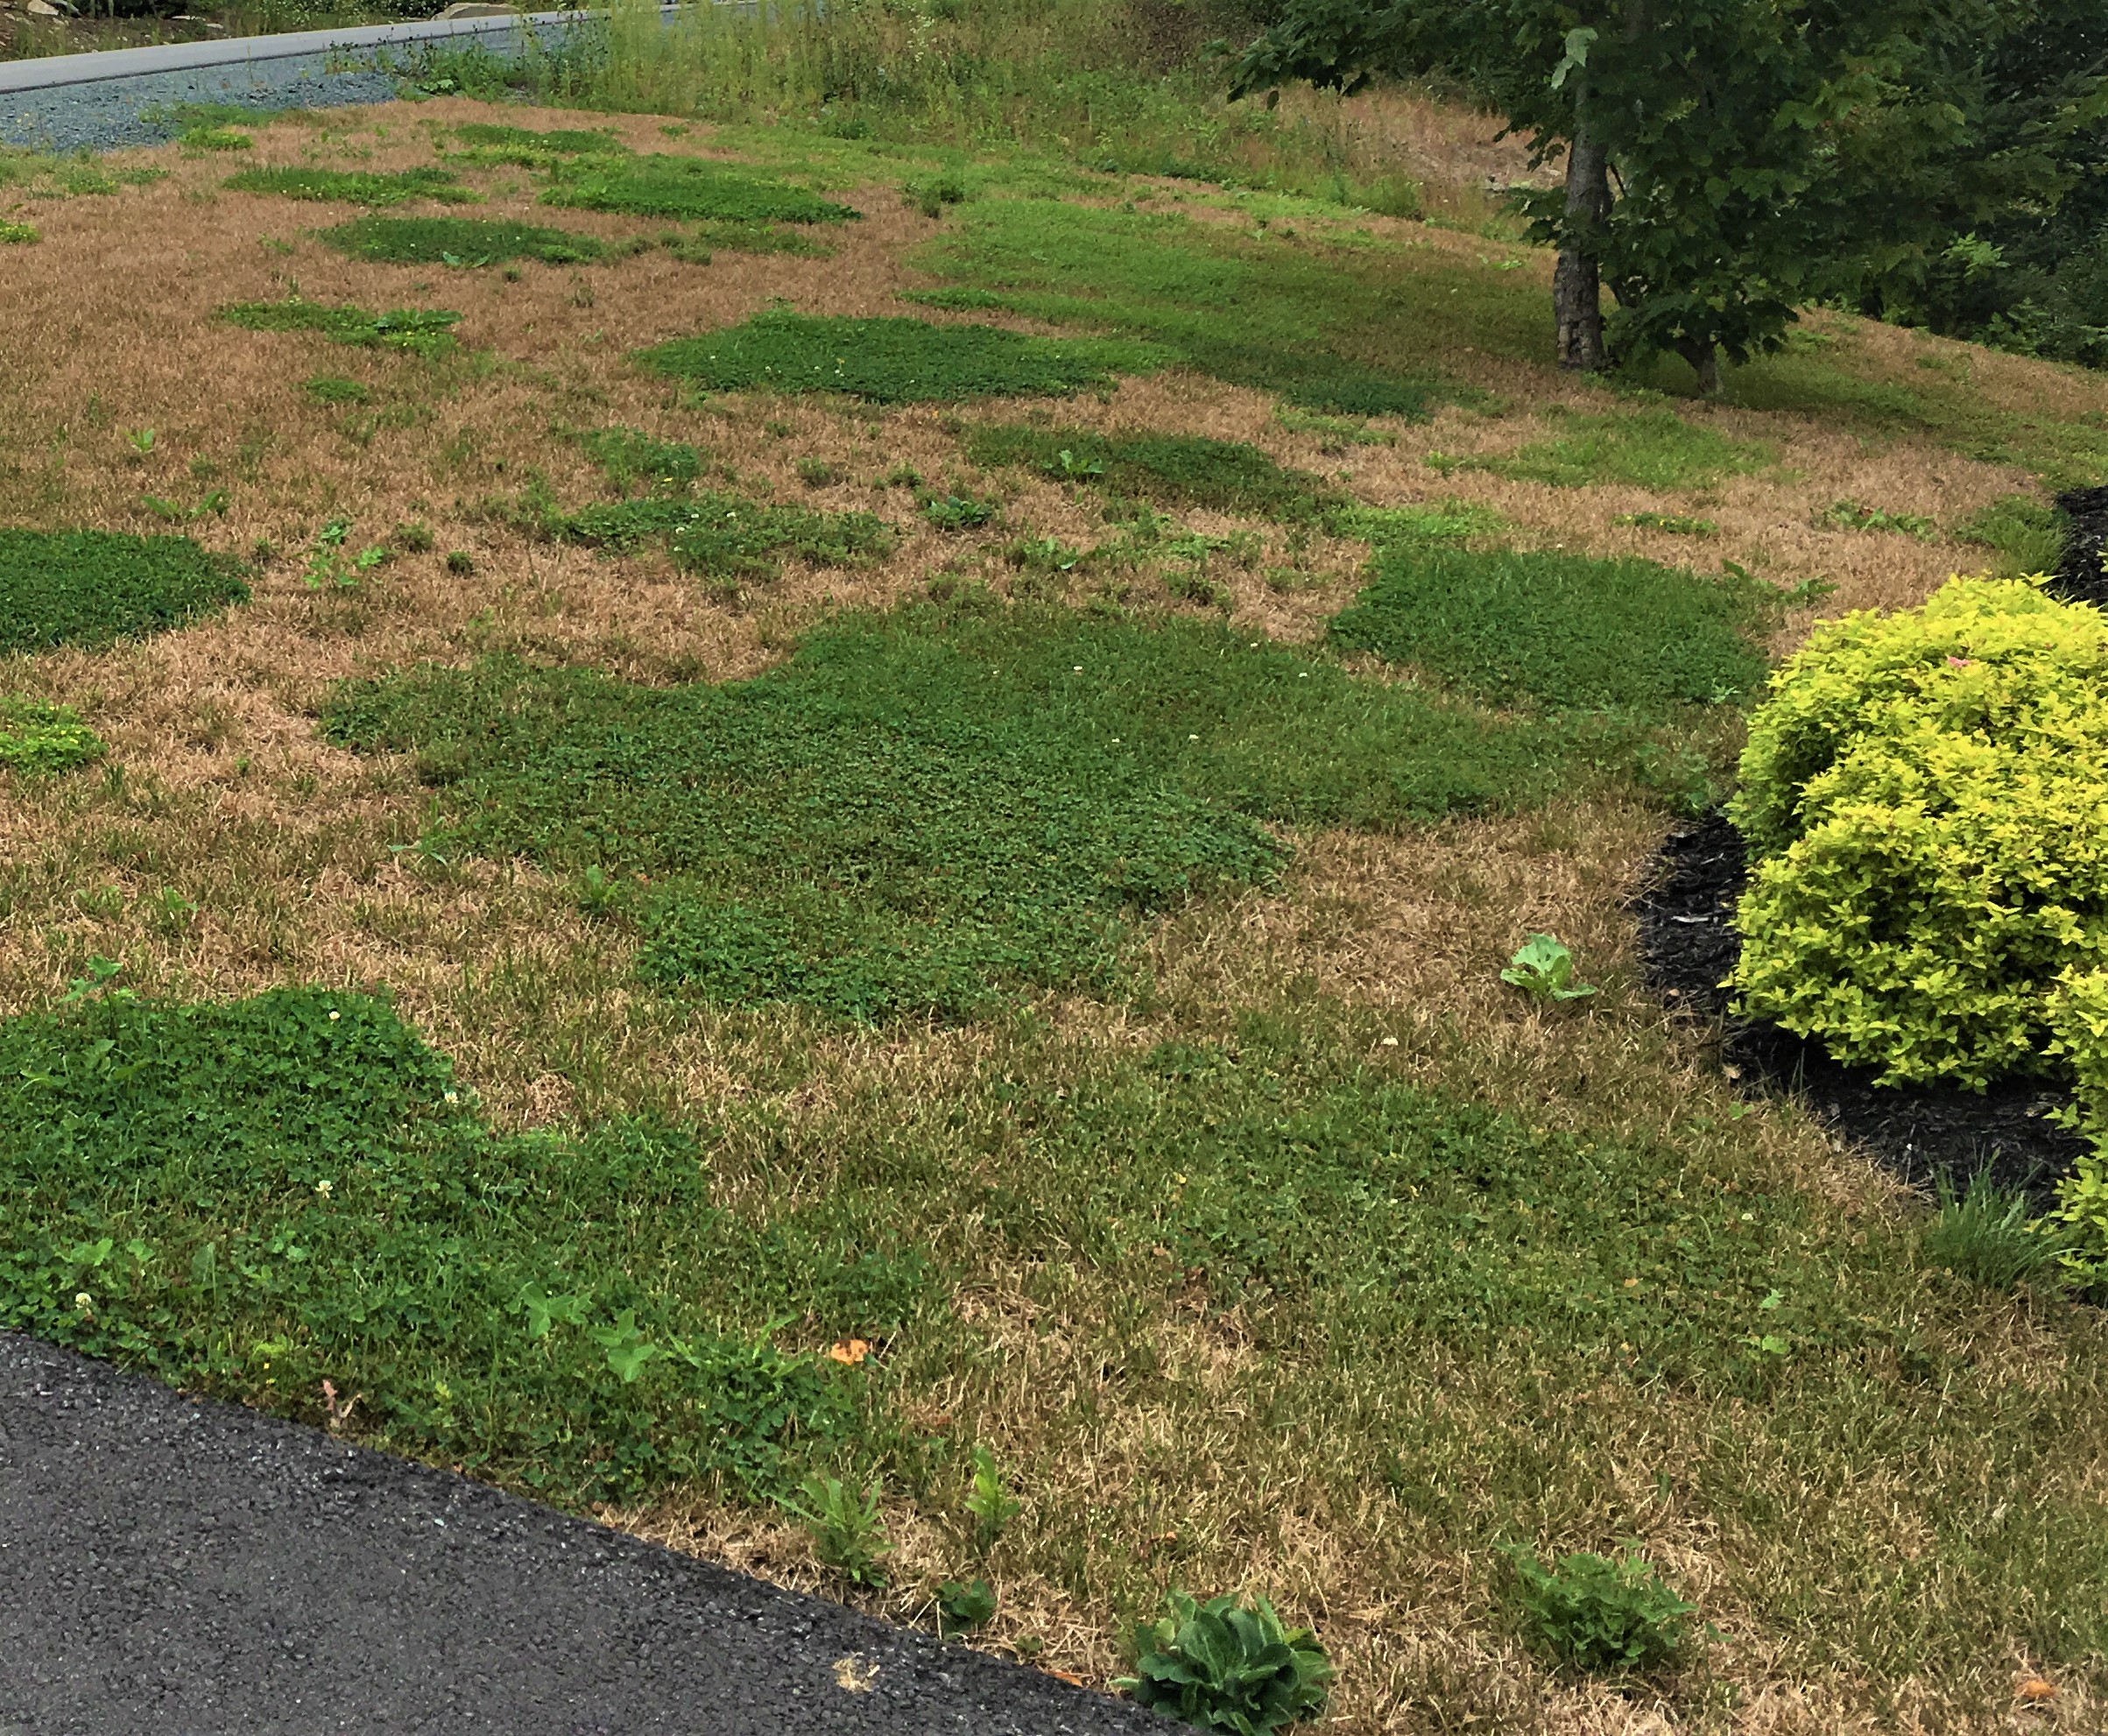 Summer drought and chinch bug have left this Kentucky blue grass lawn brown and unable to be restored. Any remaining green is…you guessed it…Dutch white clover. A mixed turf grass of micro-clover, fescue and perennial rye could have prevented the loss of the lawn.